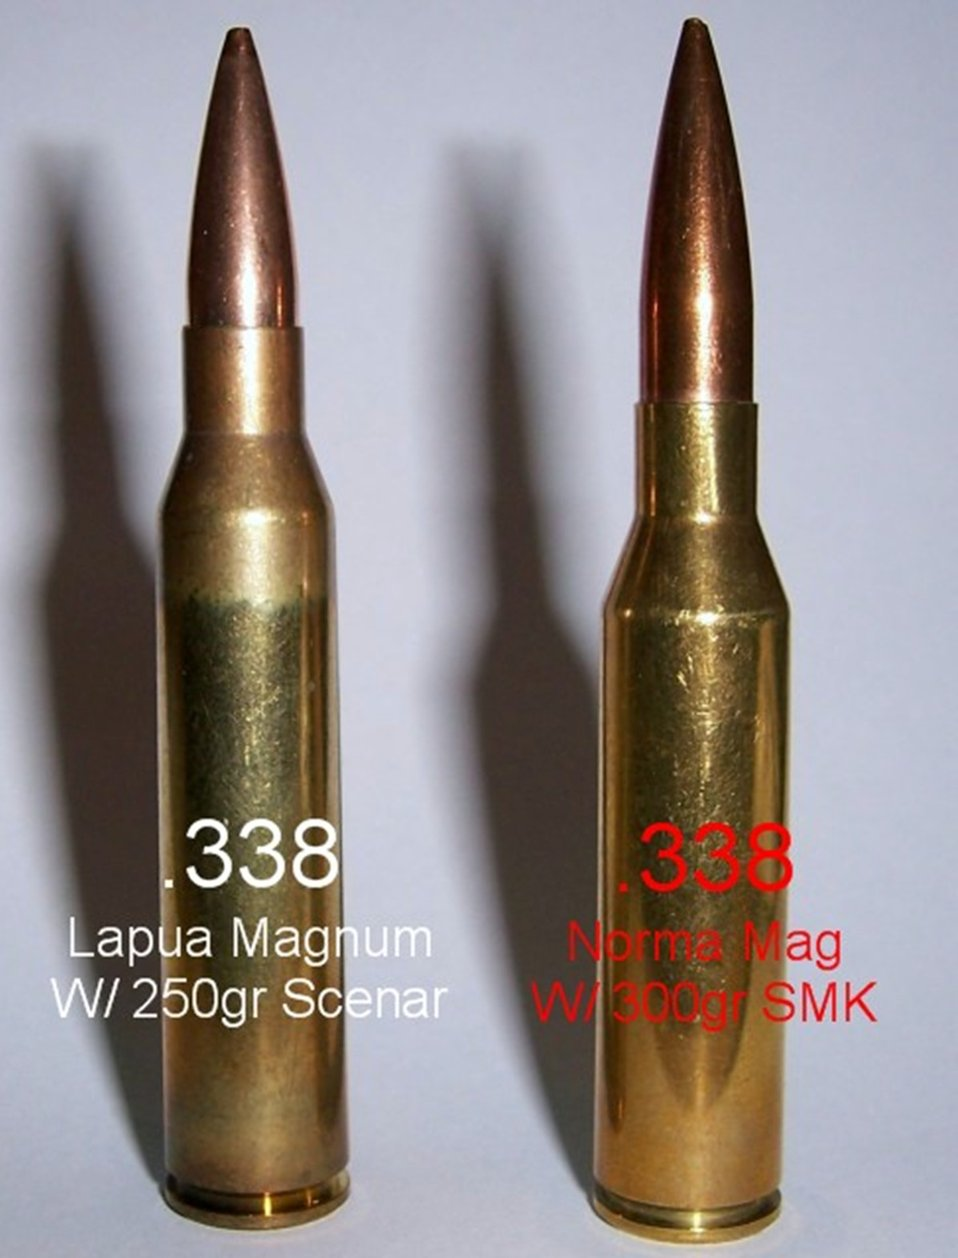 This image is a side by side comparison of the .338 Lapua Magnum cartridge to the .338 Norma Magnum cartridge.